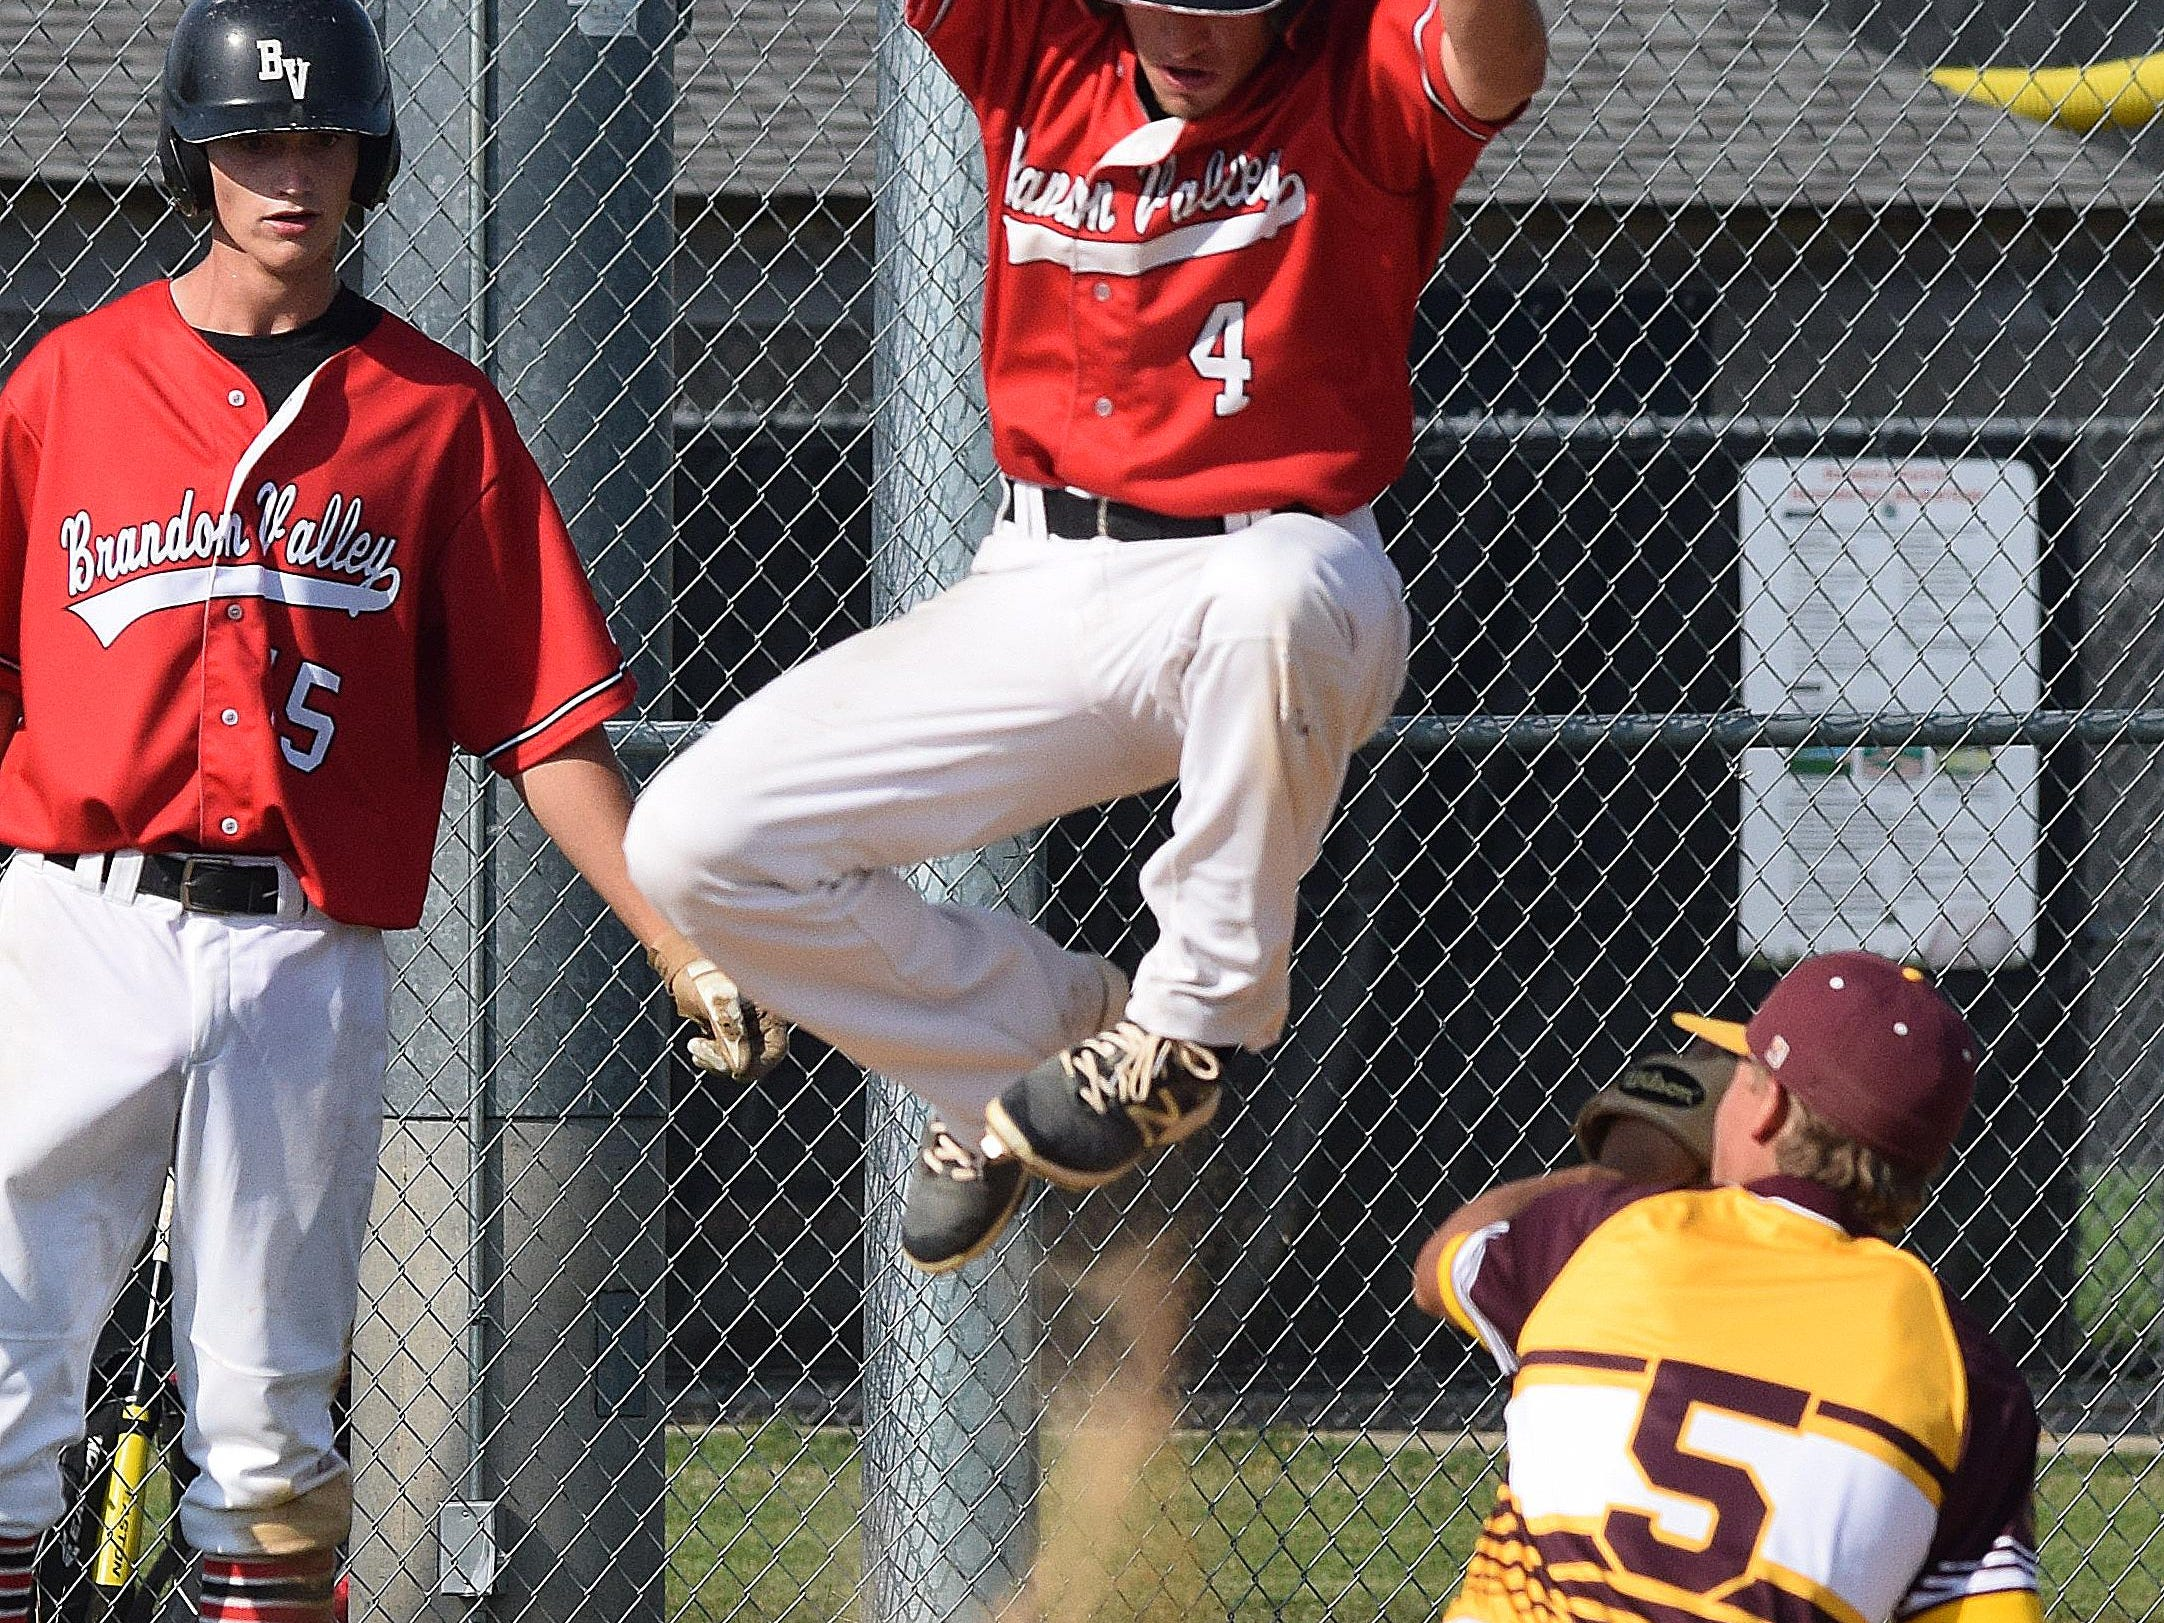 Despite being tagged out, Post 131's Calvin Kedik elevates himself over the Harrisburg player during Brandon Valley's 3-0 shutout in game two of the Region 2A American Legion Baseball Tournament last week.